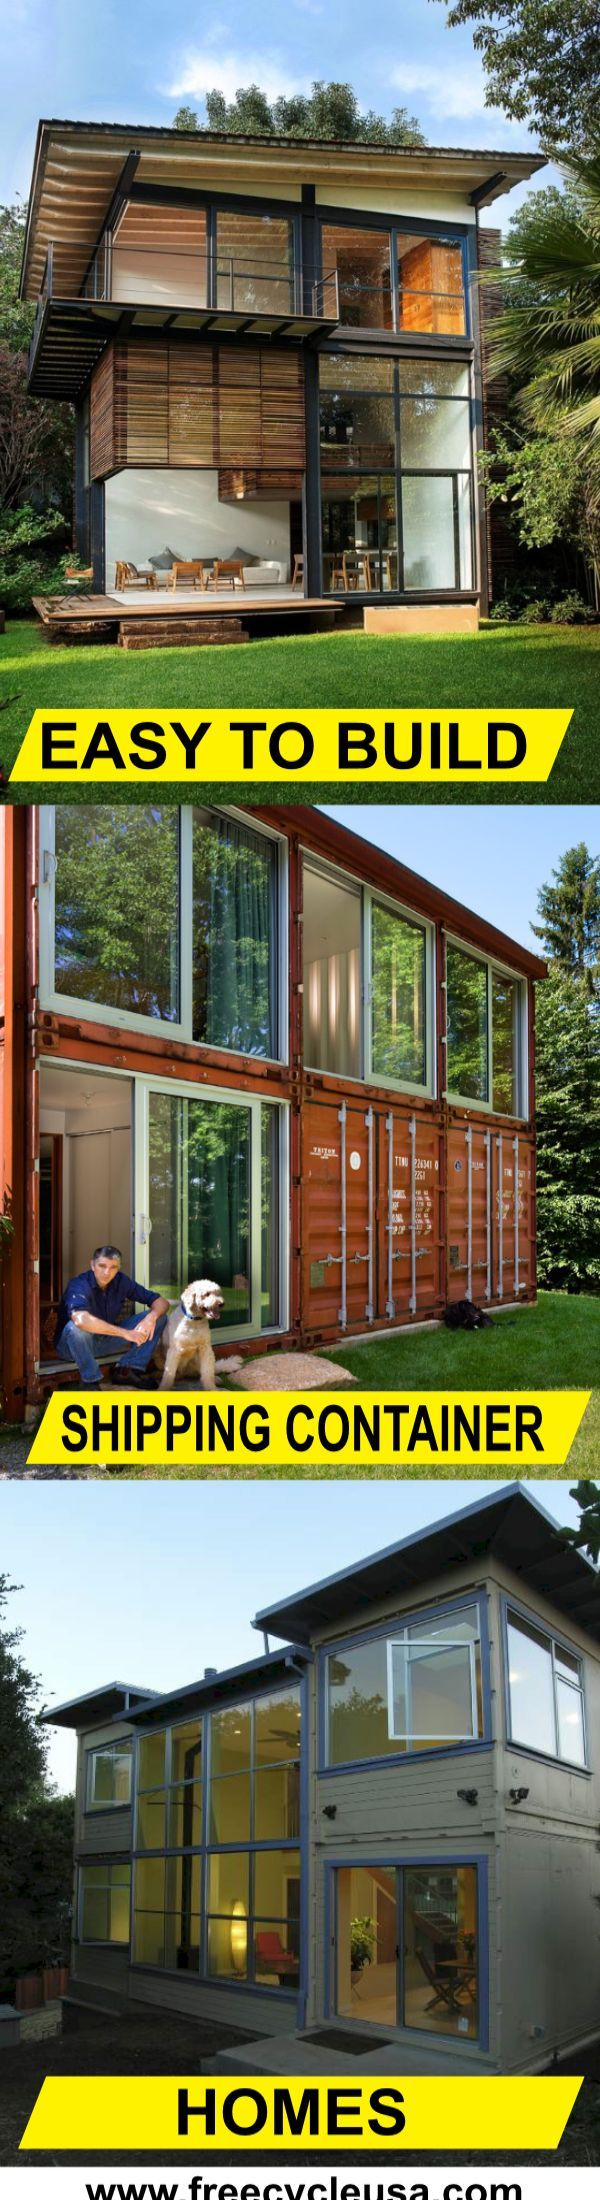 build a container home now - Container Home Design Ideas